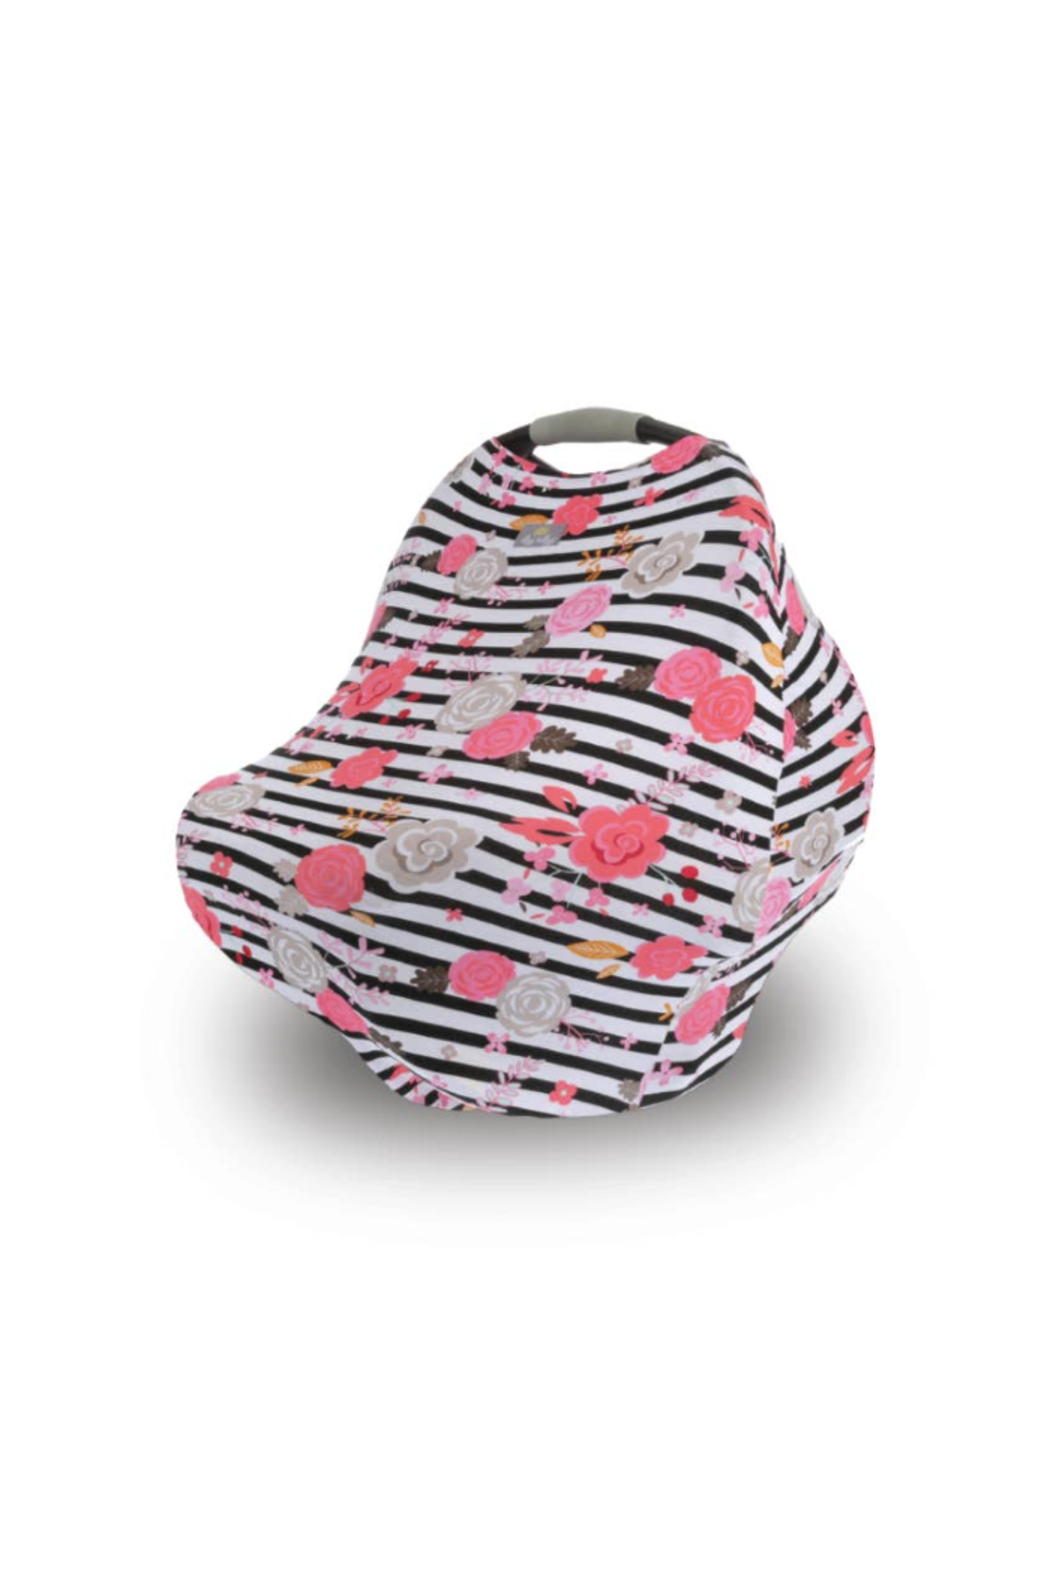 The Birds Nest MOM BOSS 4 IN 1 MULTI-USE COVER - Front Cropped Image